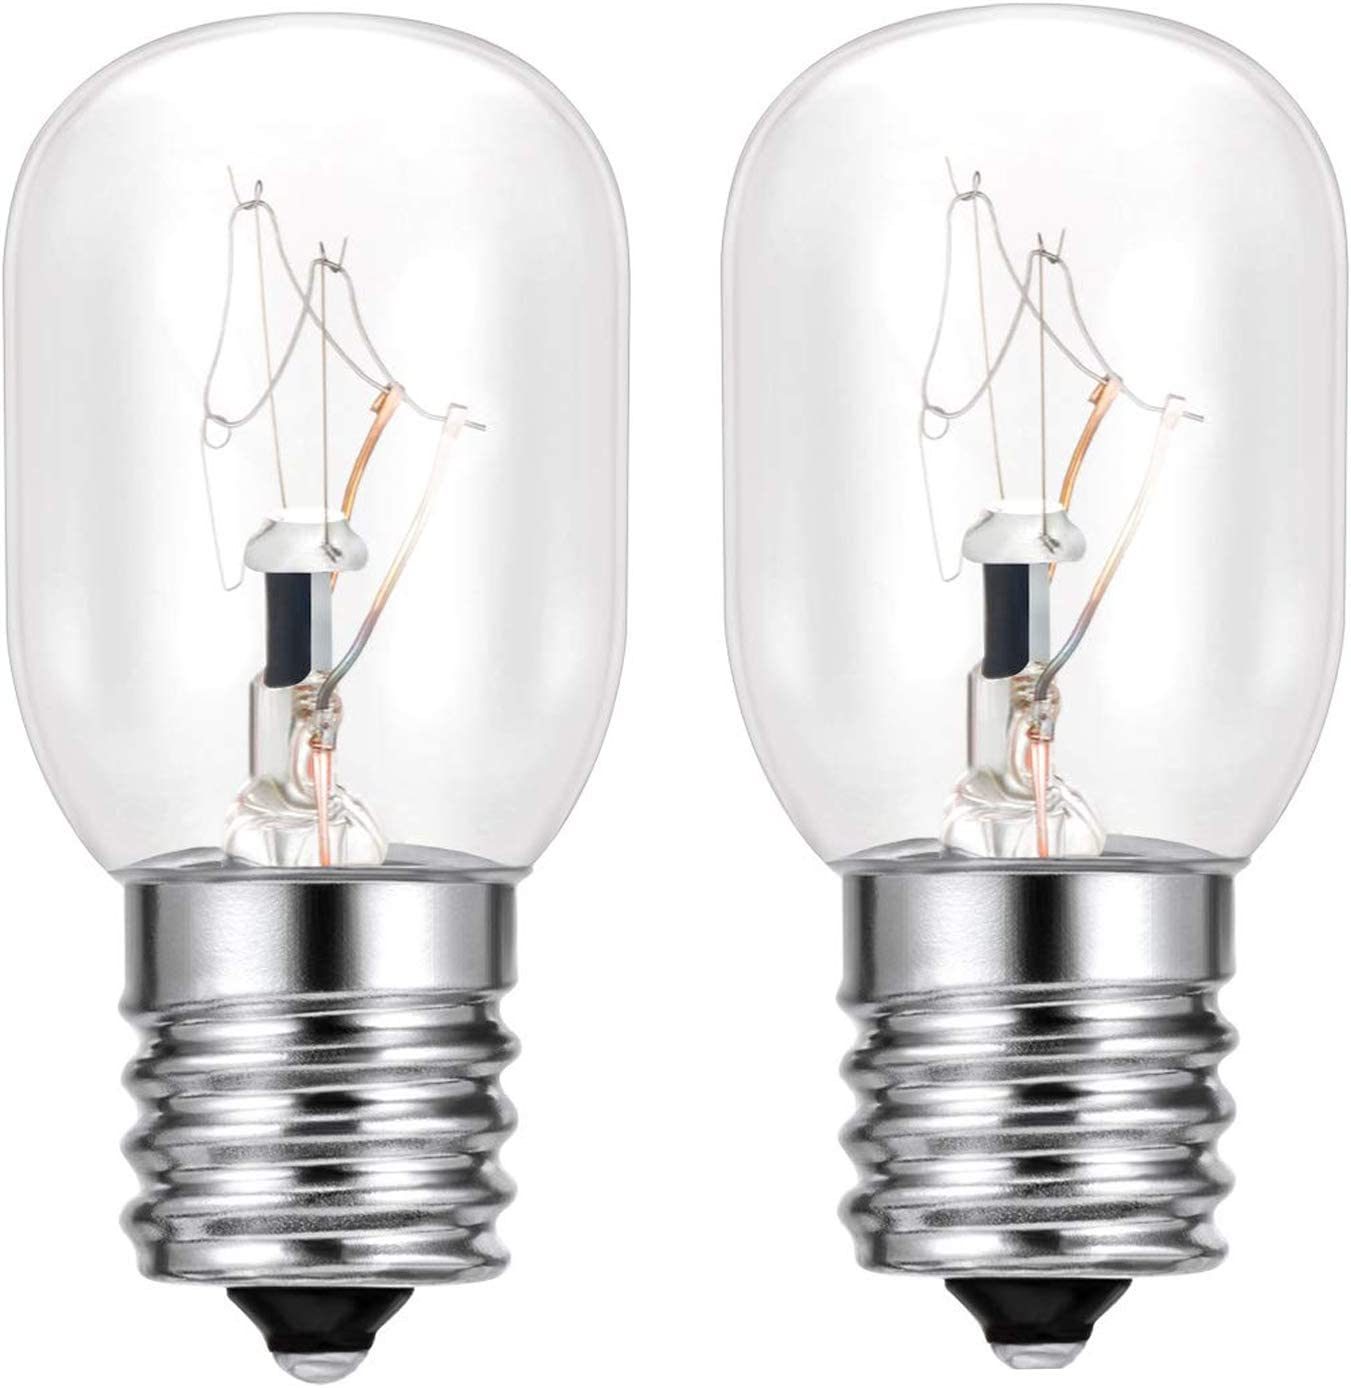 2 Pack- 8206232A Light Bulb for Whirlpool 40 Watt E17 130V